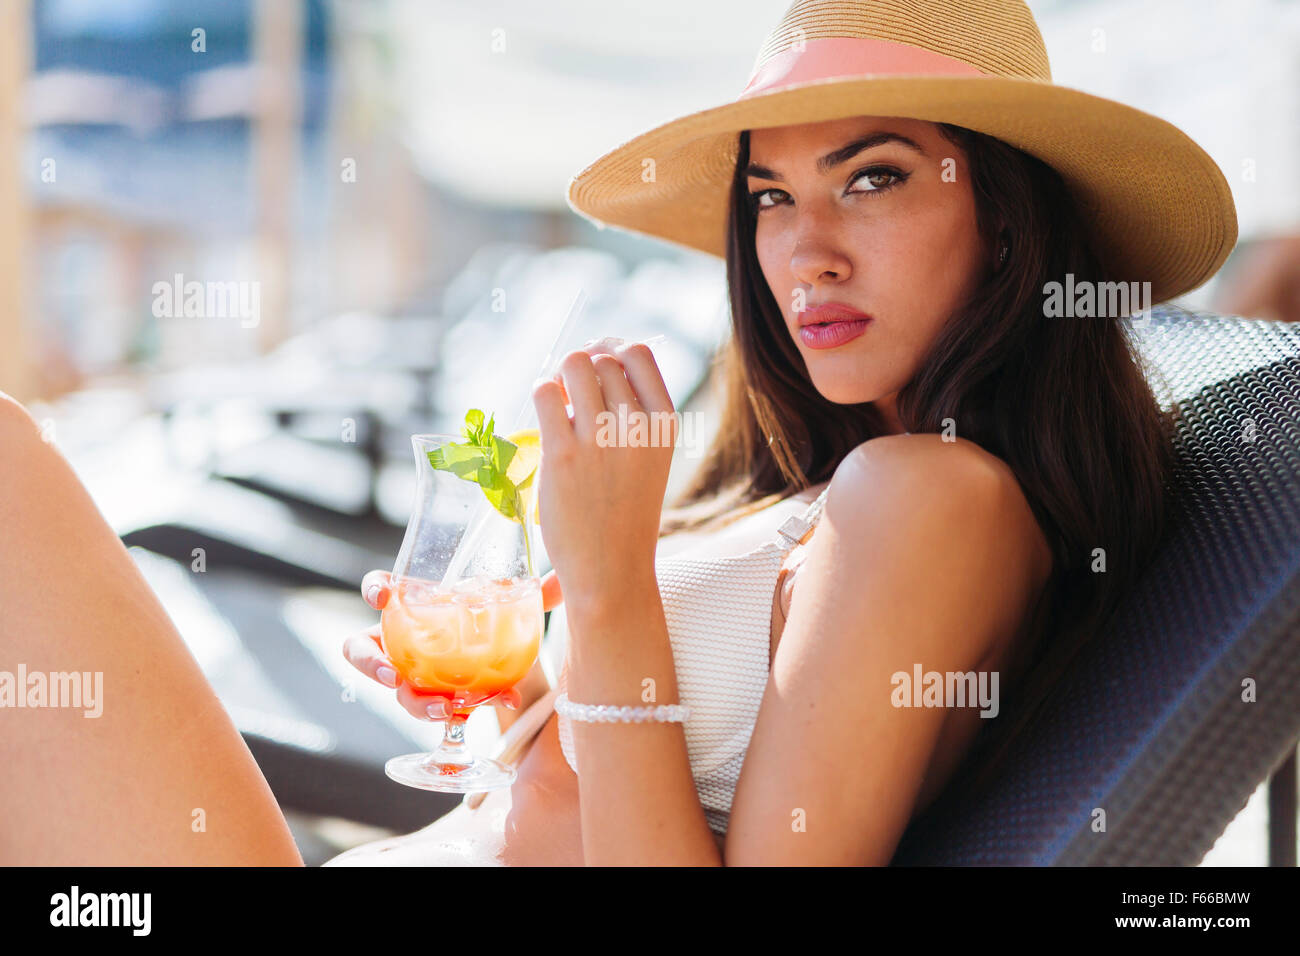 Portrait of a beautiful woman drinking cocktails while sunbathing - Stock Image